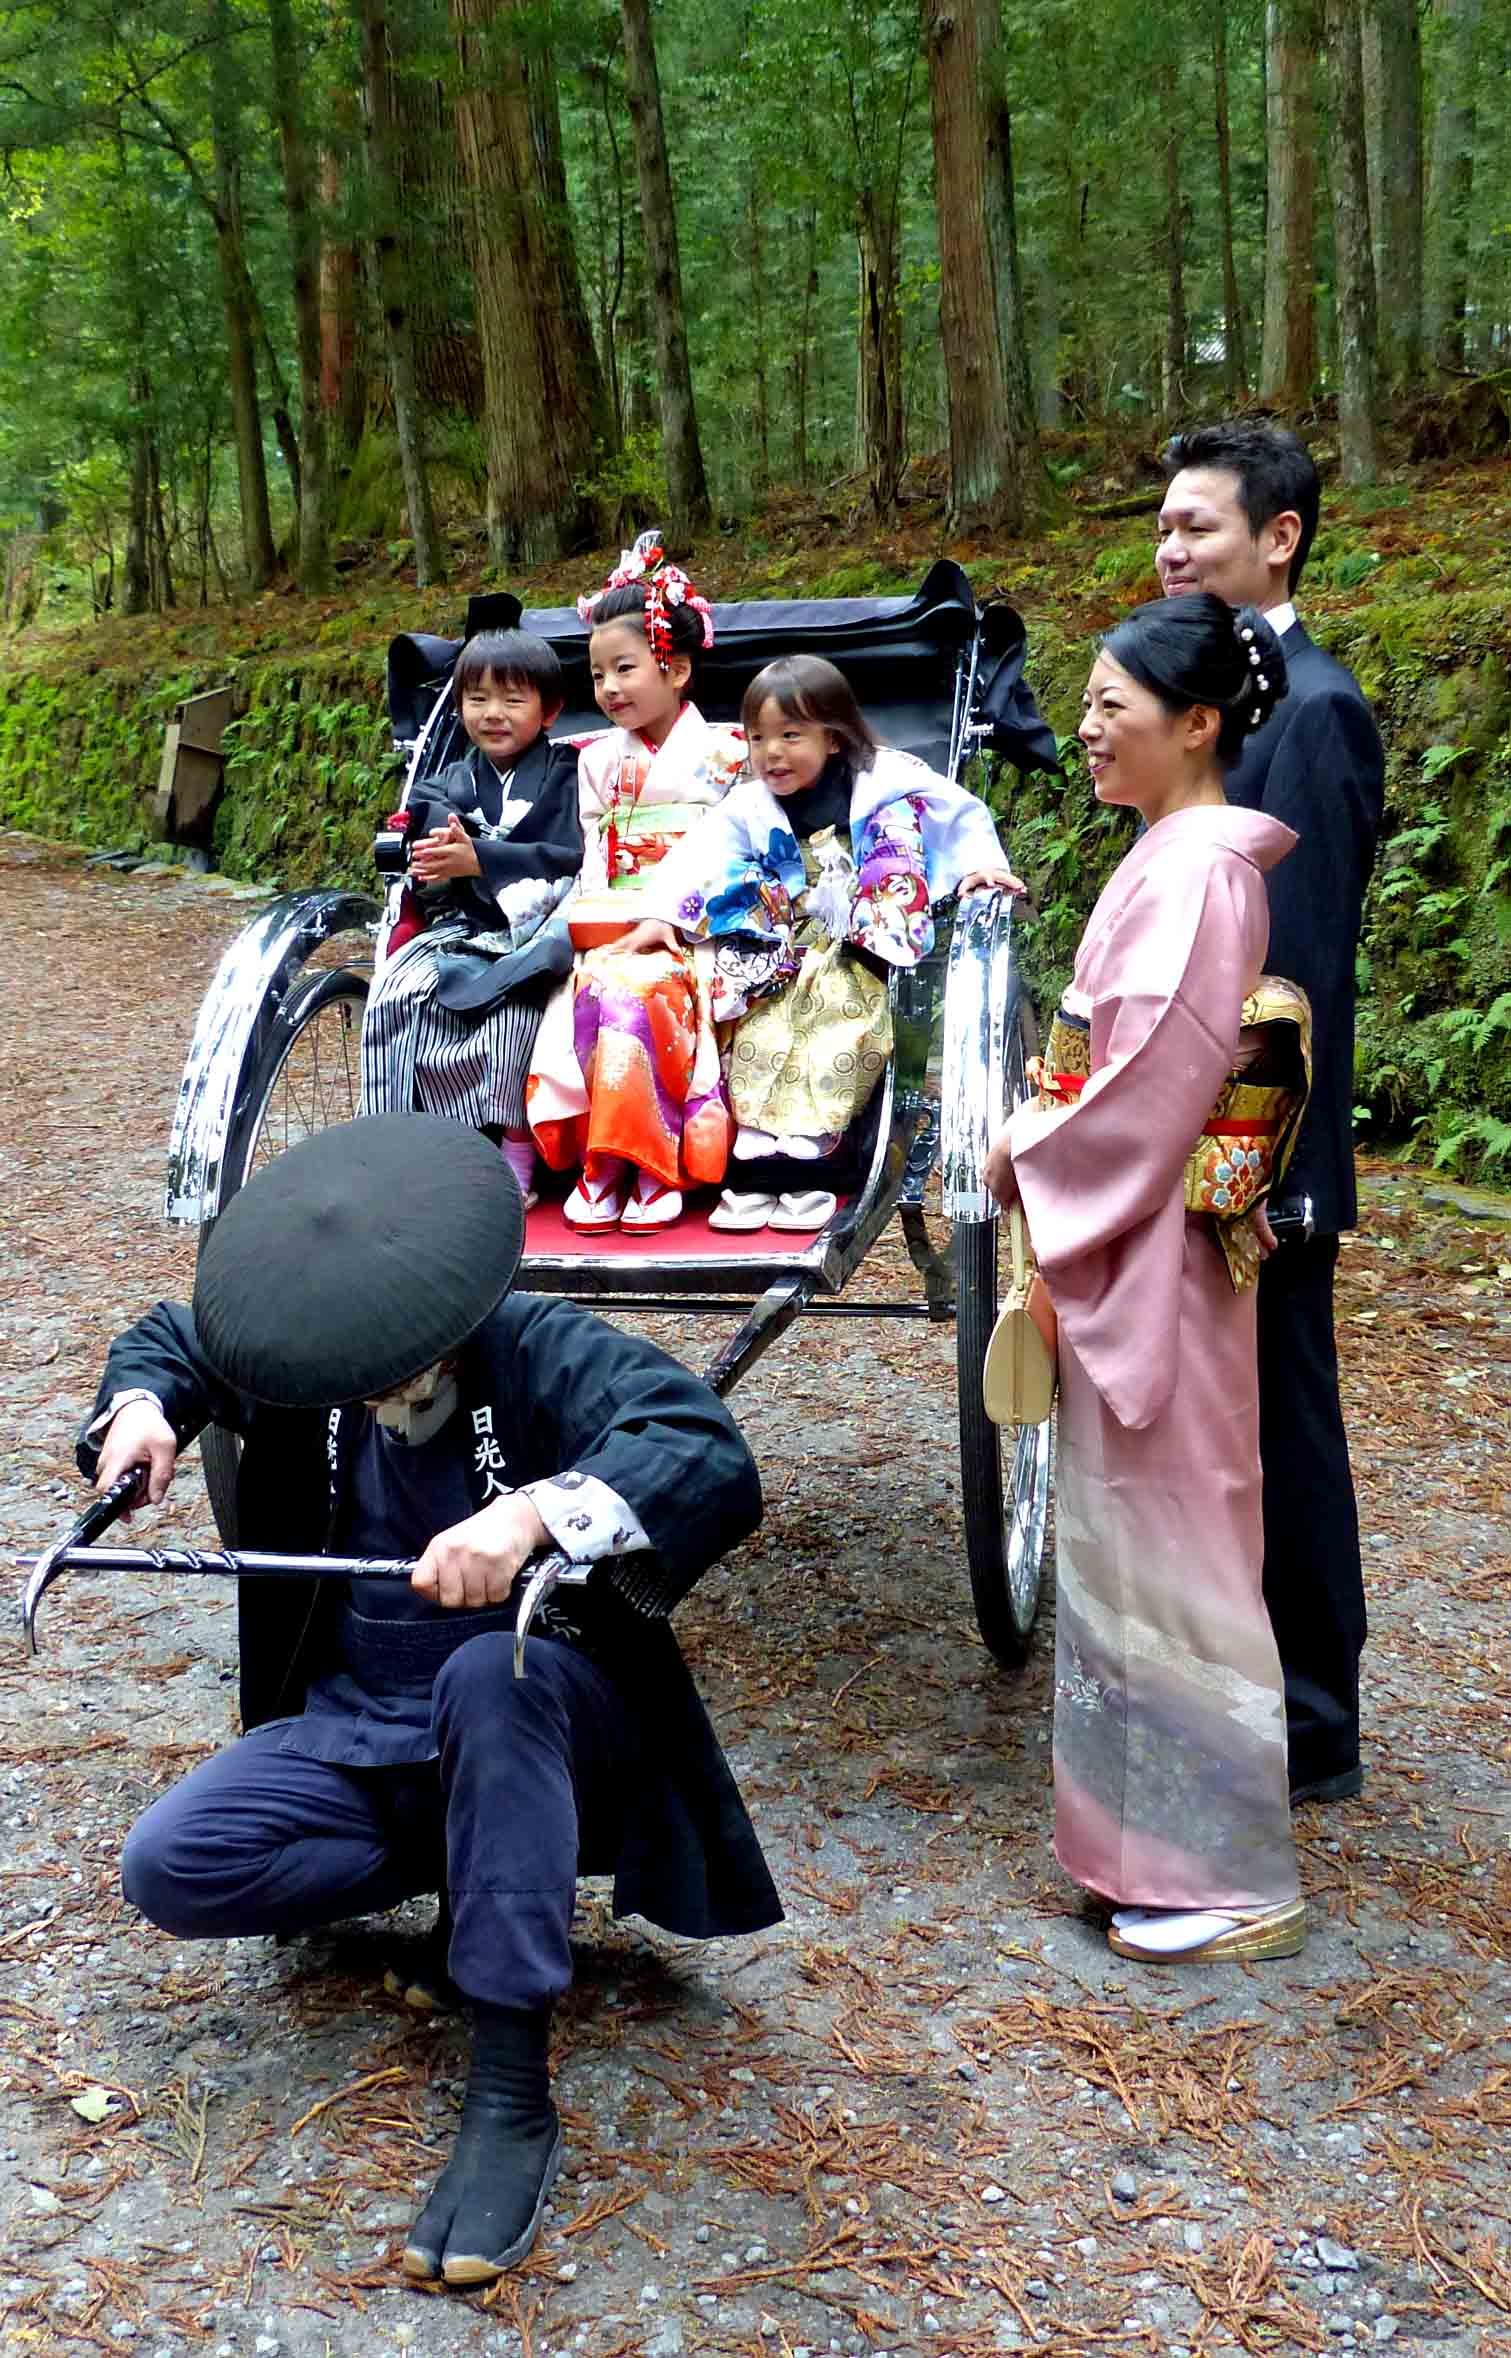 Japanese children in a rickshaw and parents standing nearby